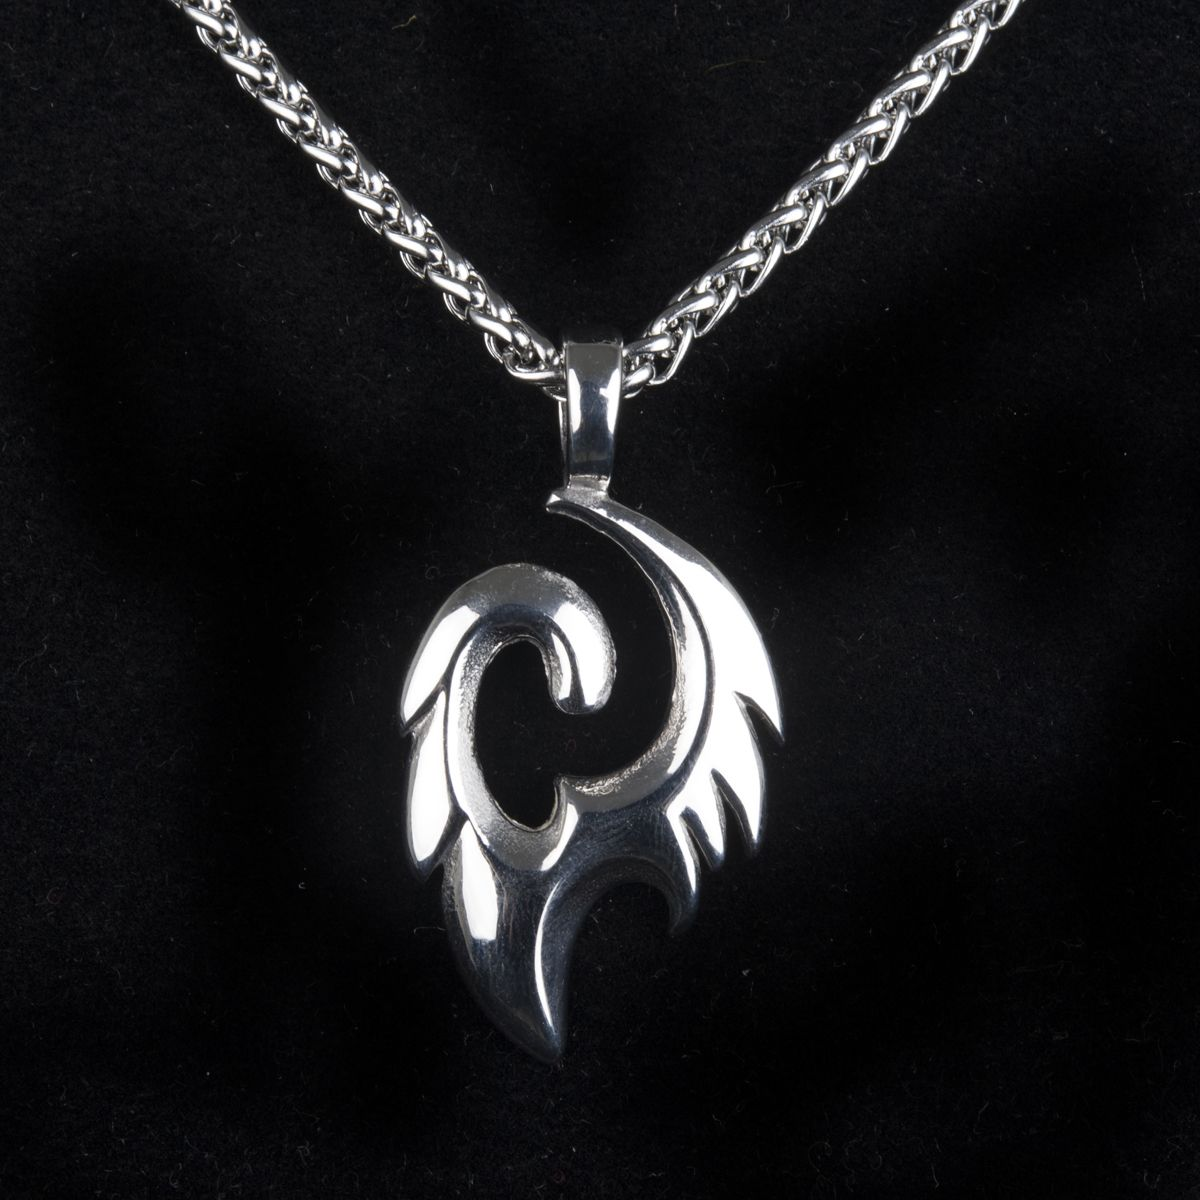 Stainless steel necklace pendant with meaning of intuition stainless steel necklace pendant with meaning of intuition aloadofball Choice Image